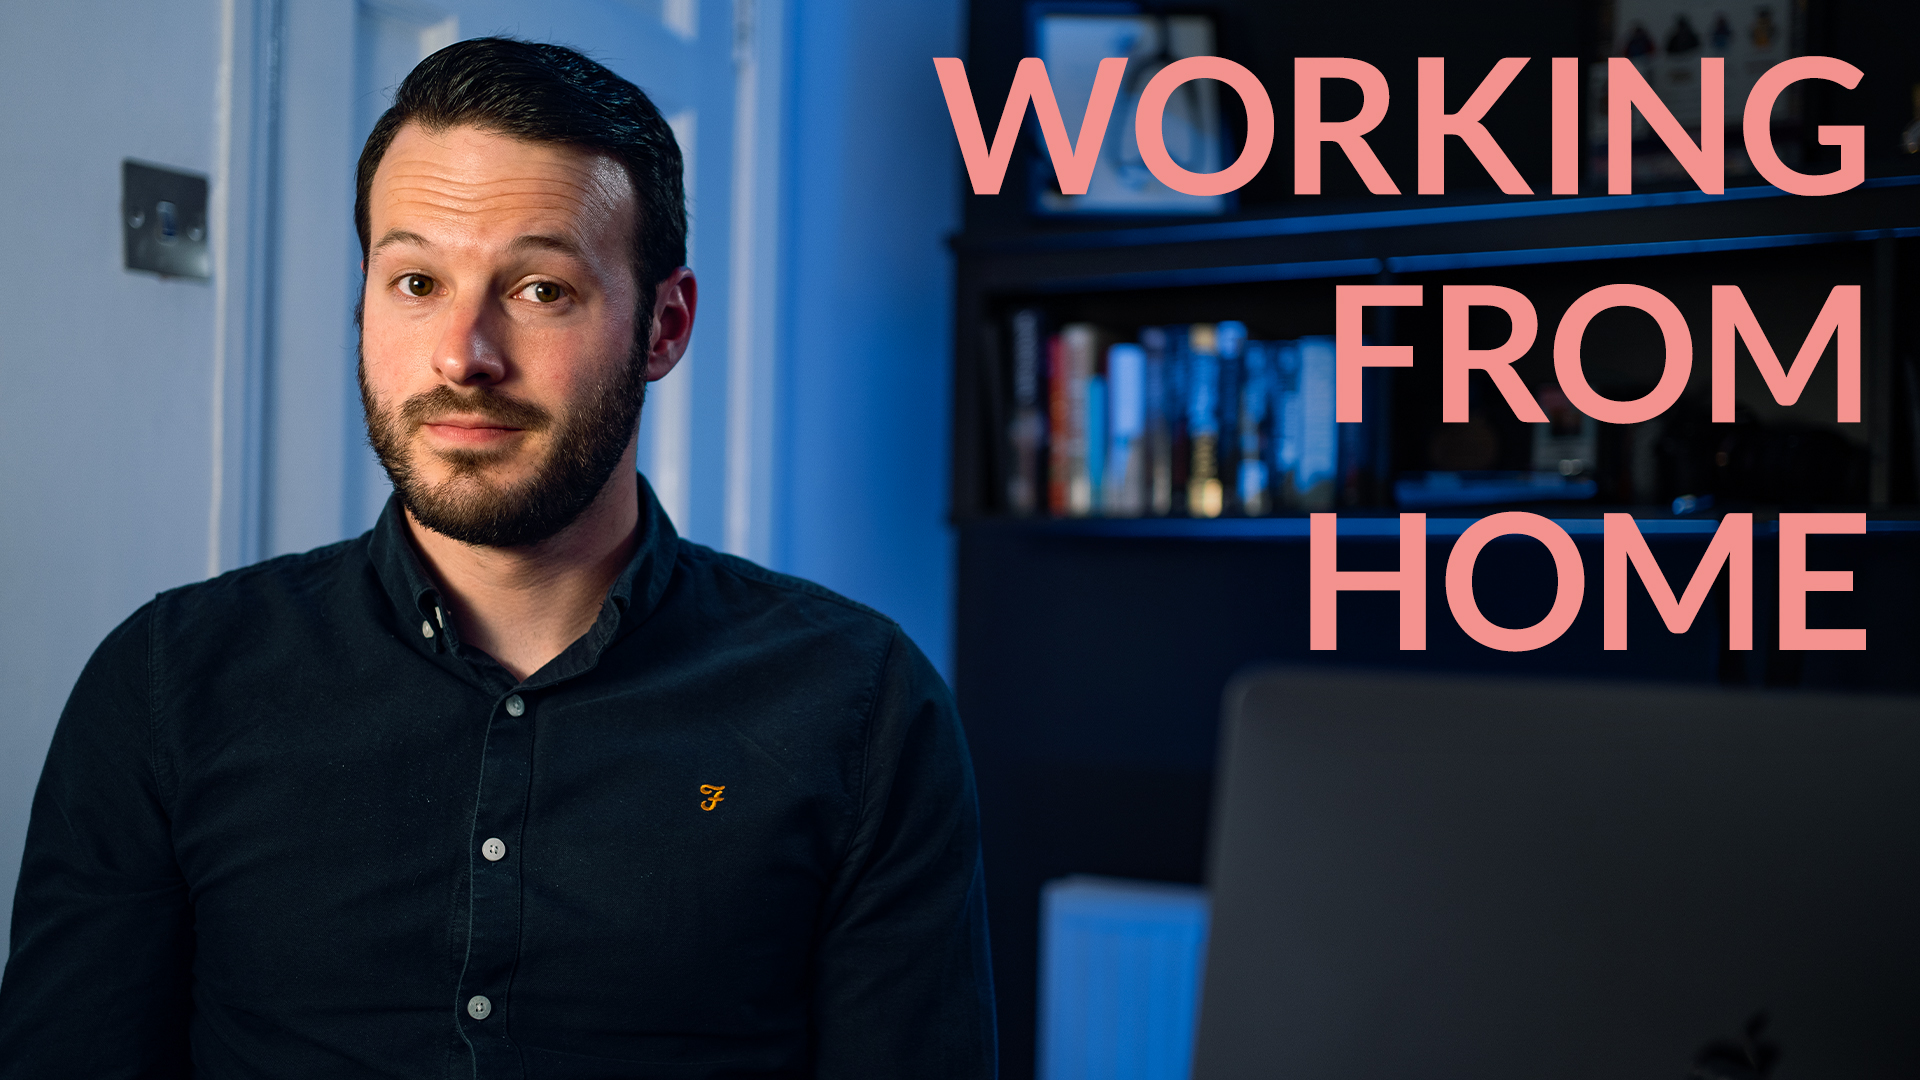 Day 7 - Secrets to working from home stress free